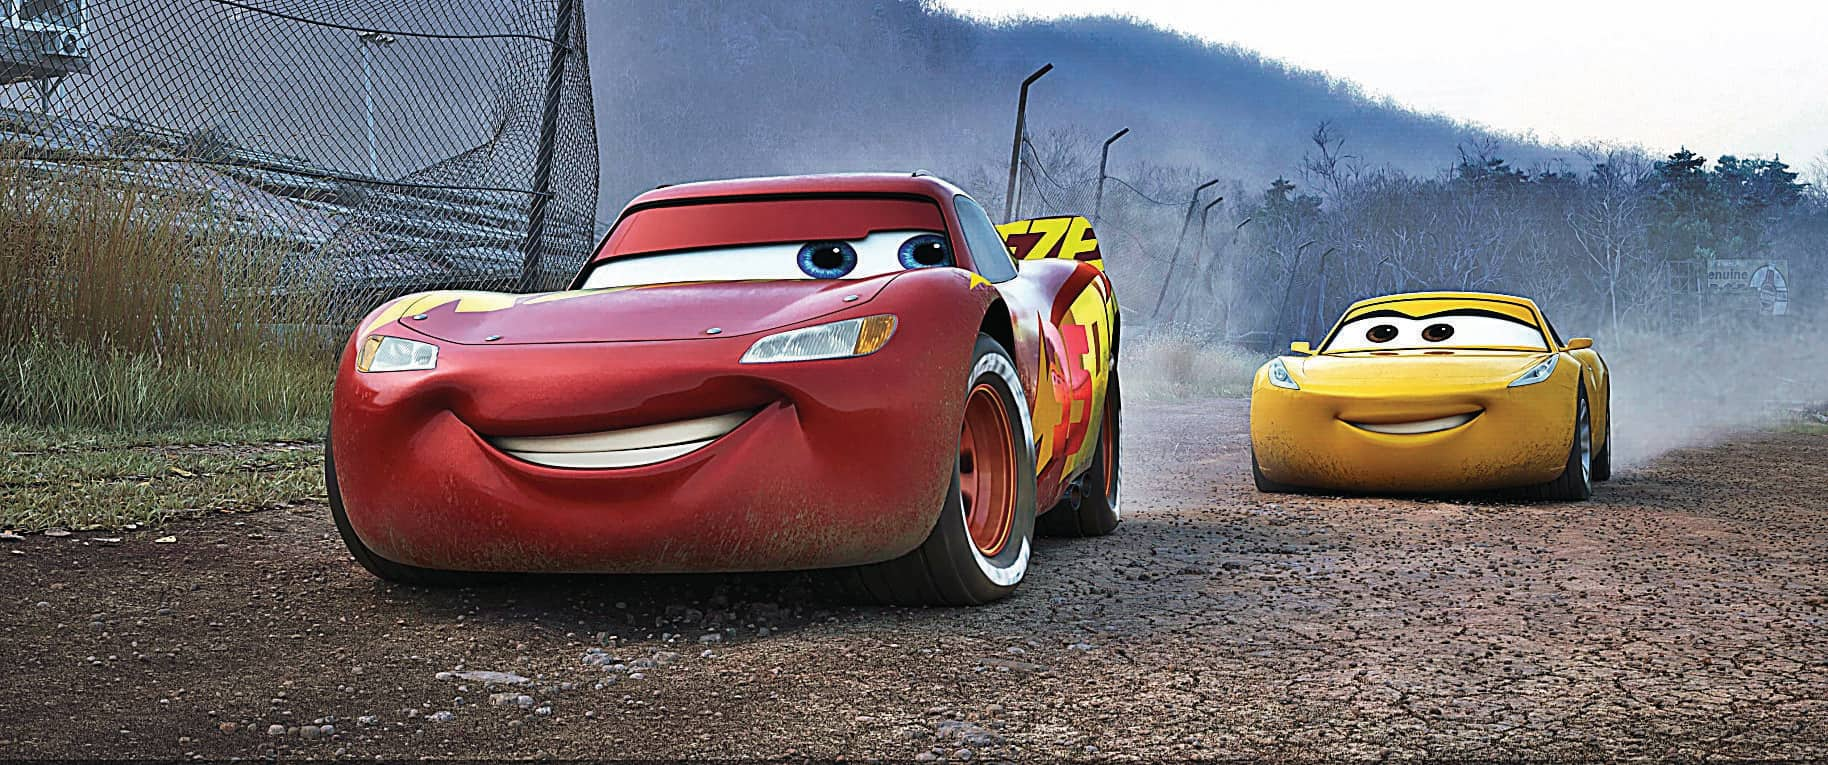 New PX Lightning McQueen Statue Coming Soon